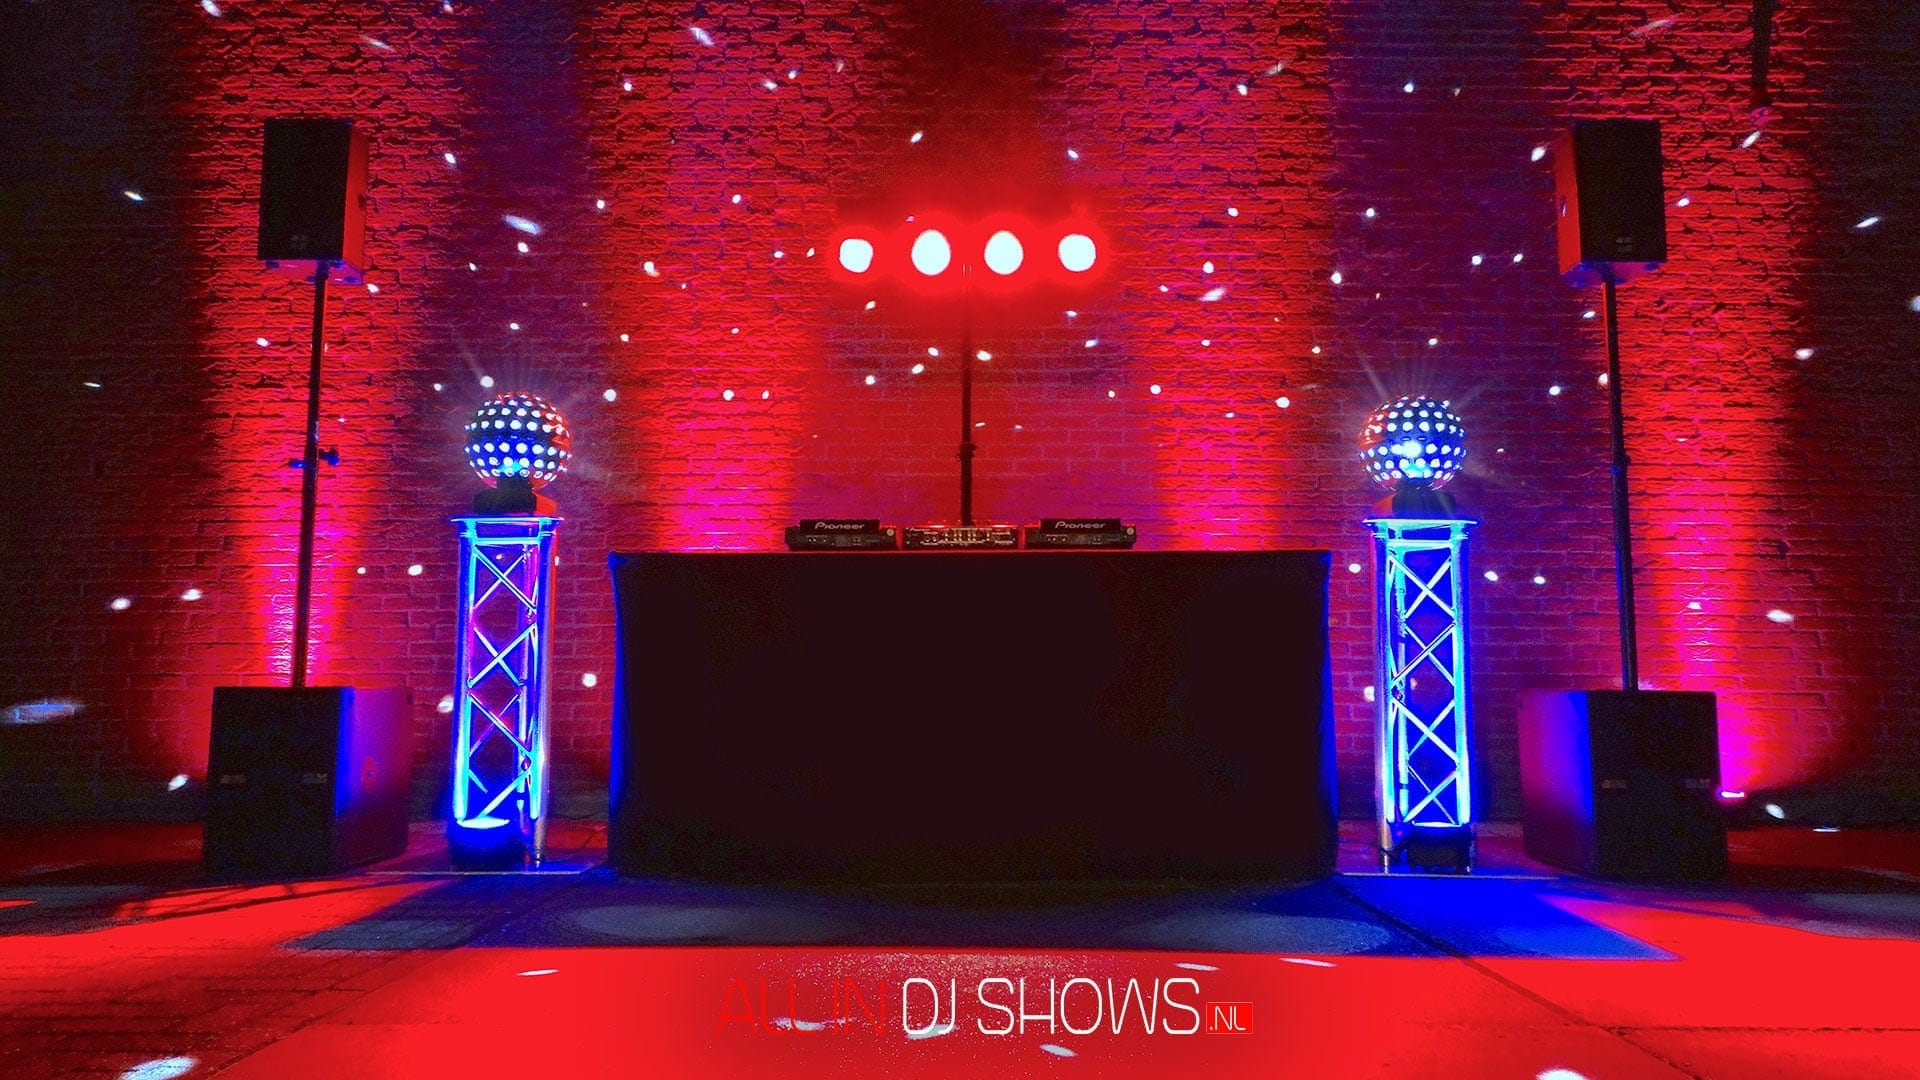 All-in-DJ-Show-Regular-standard-1